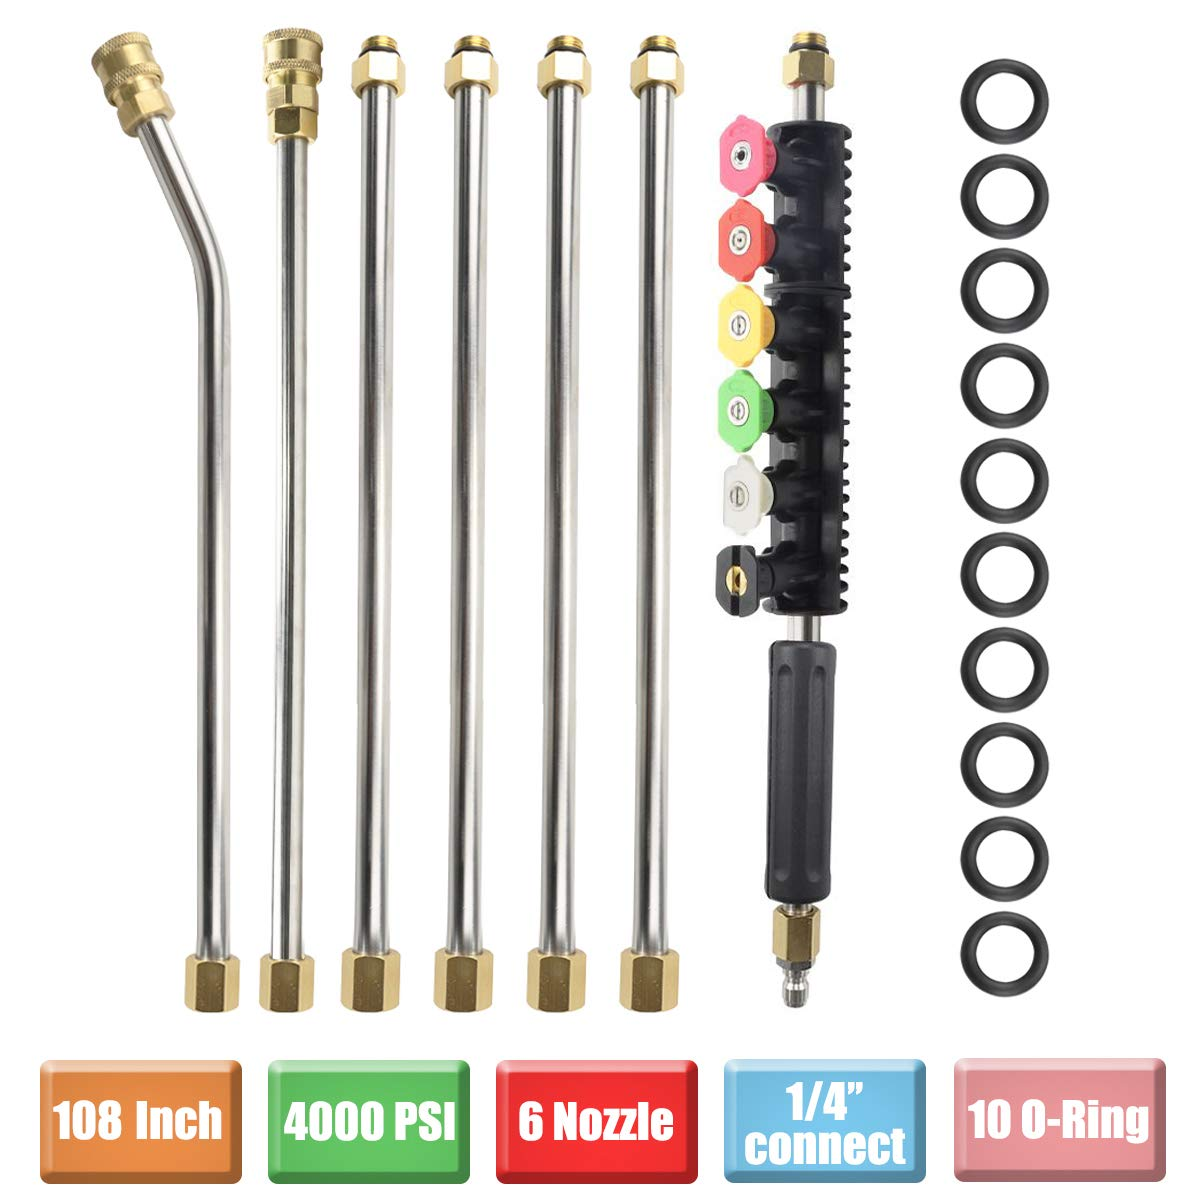 Pressure Washer Extension Wand Set, Replacable Power Washer Lance with 6 Spray Nozzle Tips Design,30 Degrees Curved Rod, 1/4''Quick Connect, 10 Replacable Anti-Leaked Ring, 4000 PSI